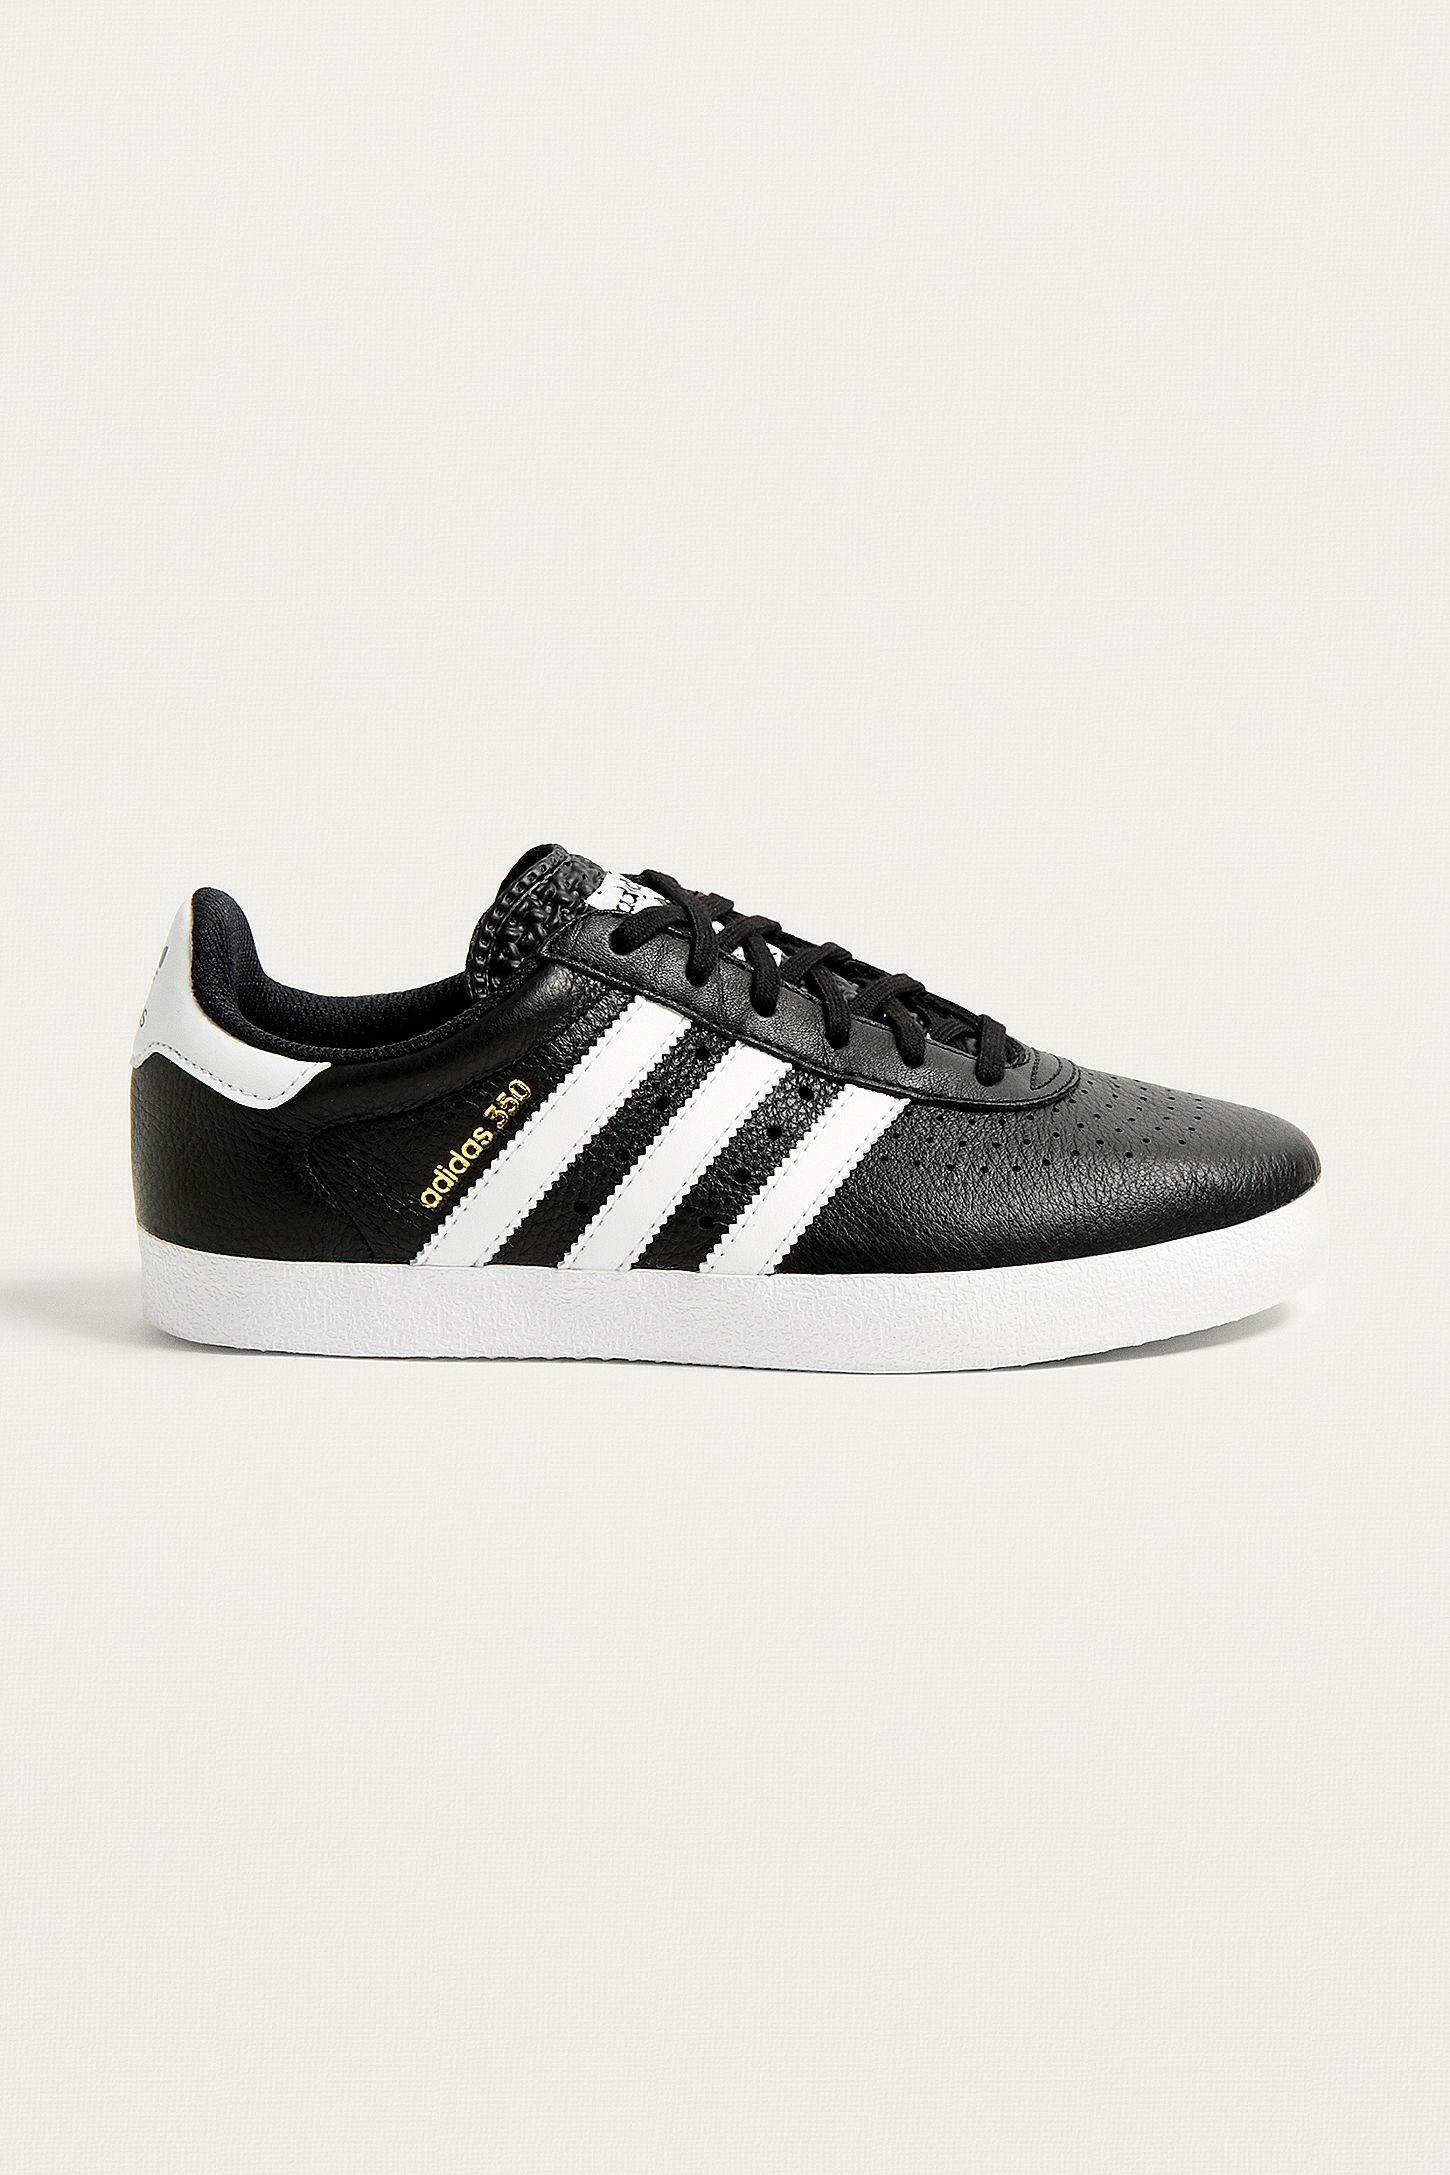 best website 12cf7 06a67 adidas Originals 350 Leather Trainers. Click on image to zoom. Hover to  zoom. Double Tap to Zoom